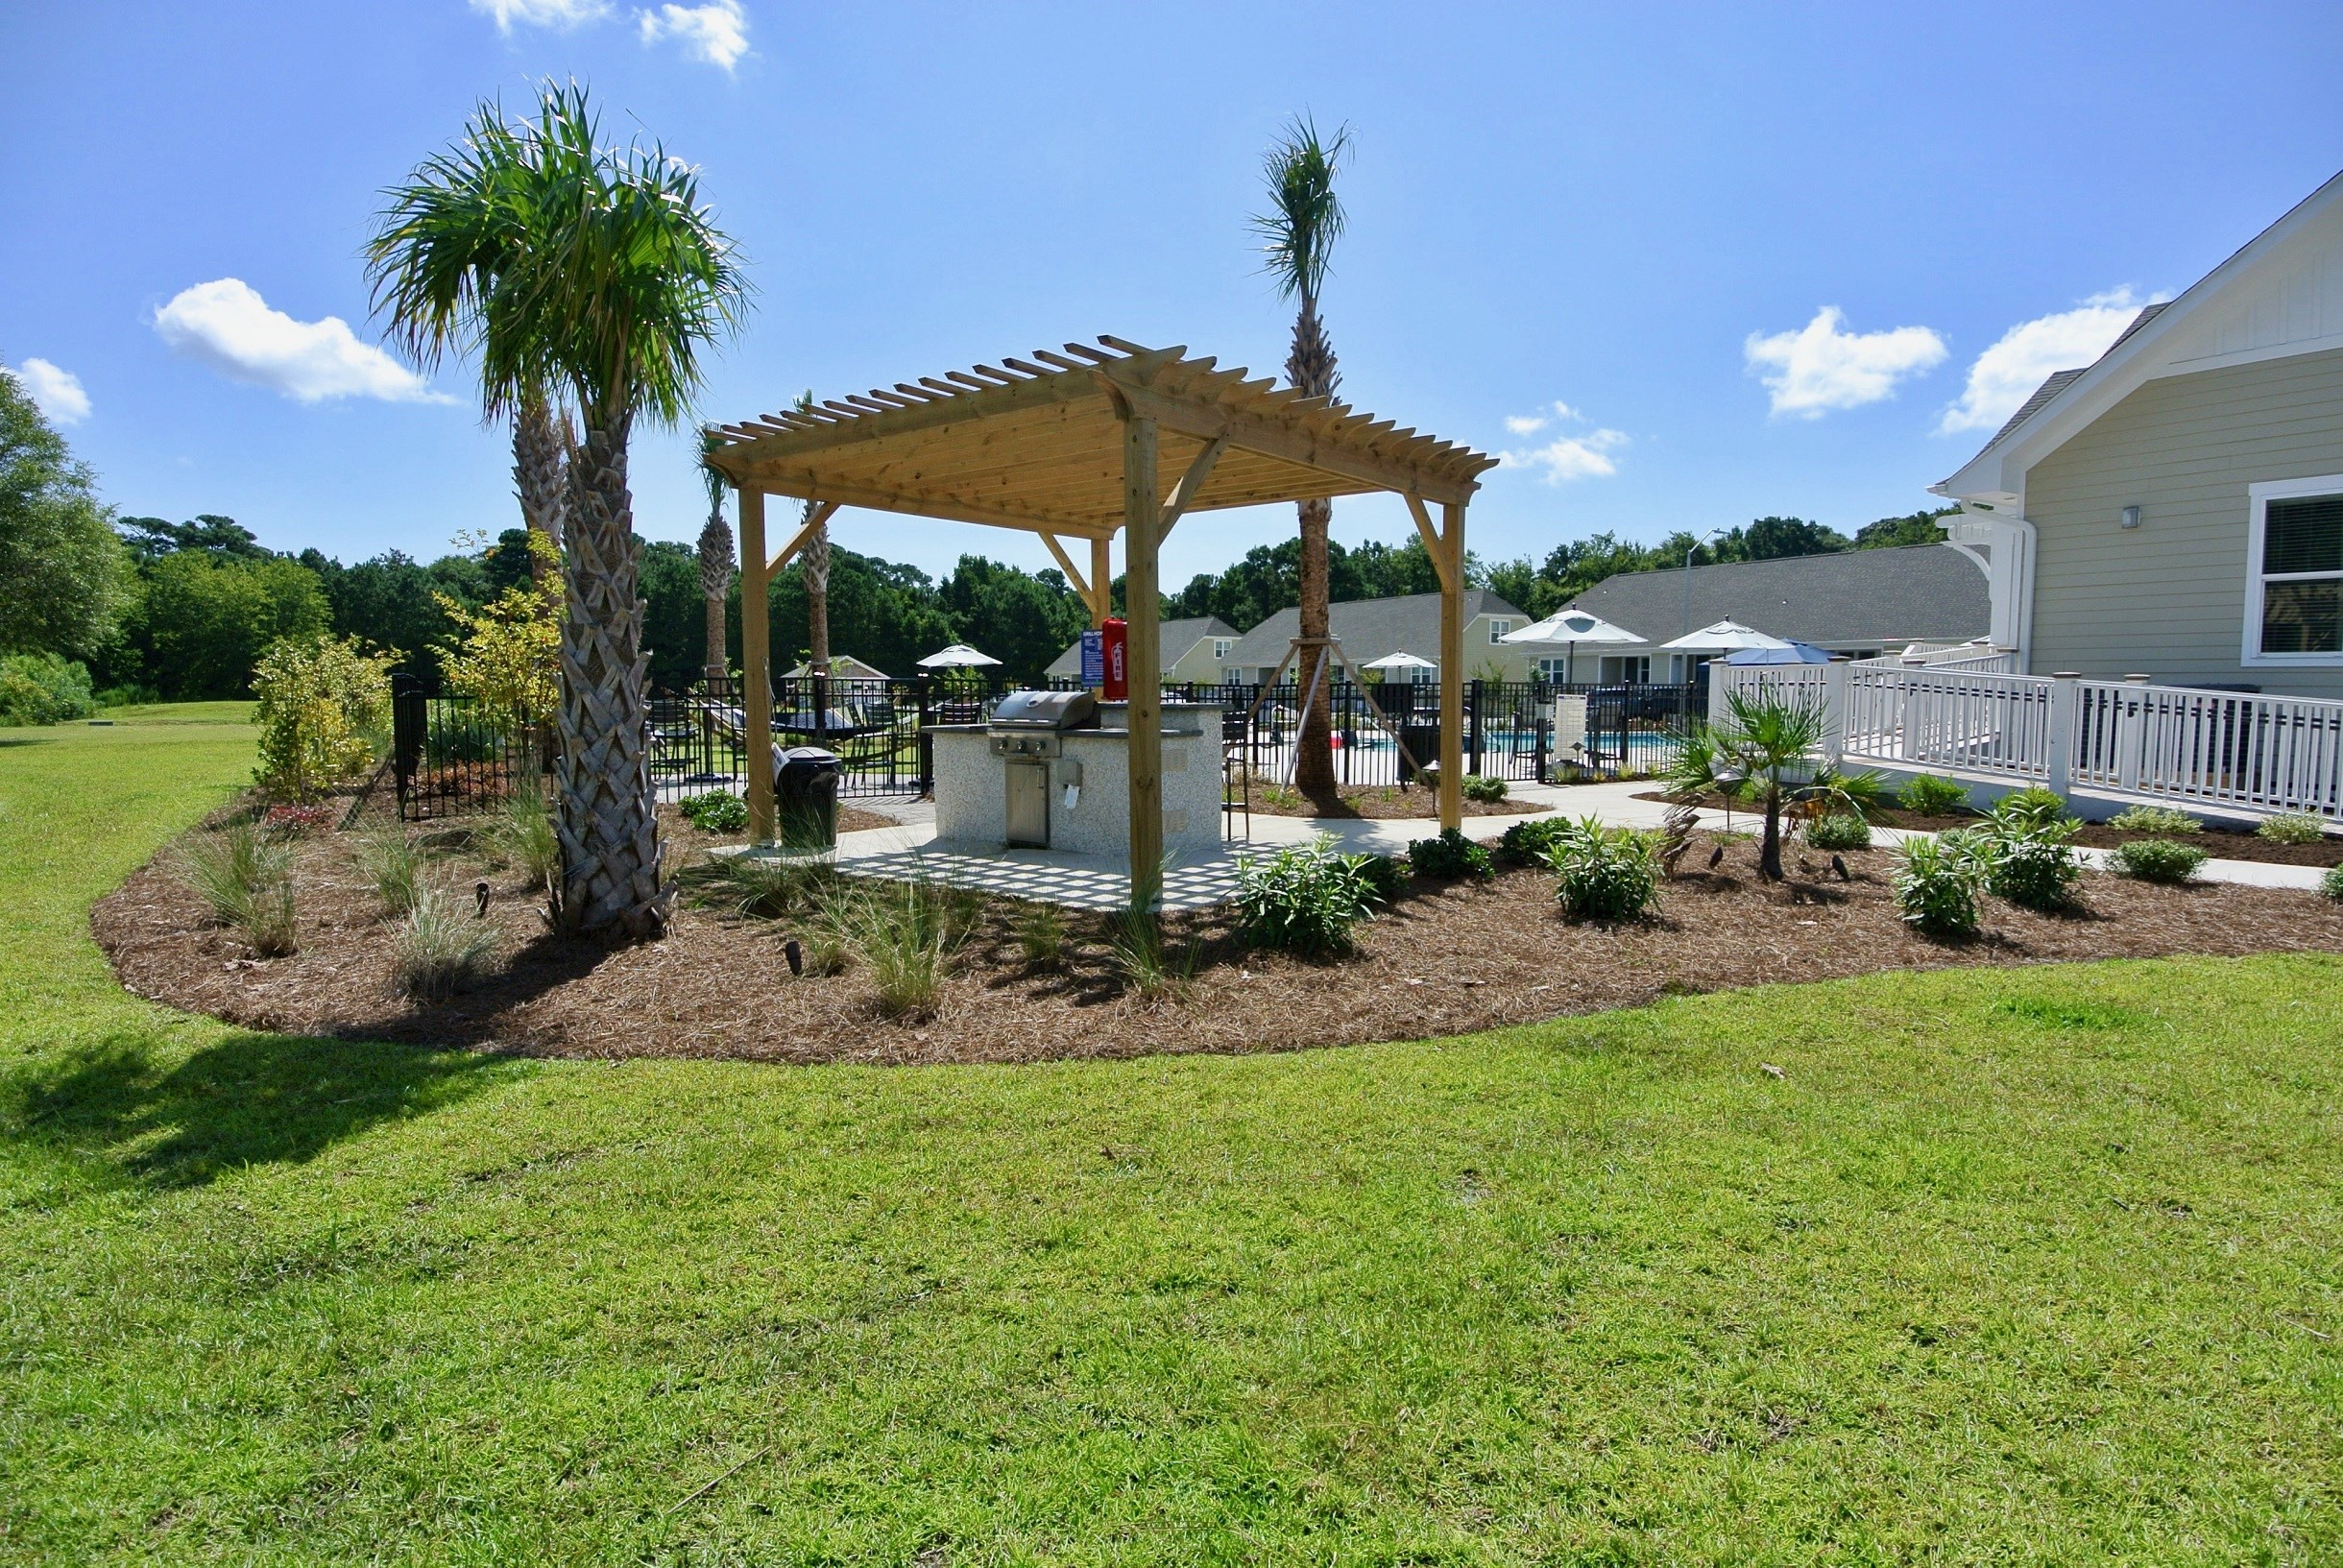 Luxury Townhomes in Wilmington, NC - Myrtle Landing Outdoor BBQ Grill Pavilion Surrounded by Lush Landscaping